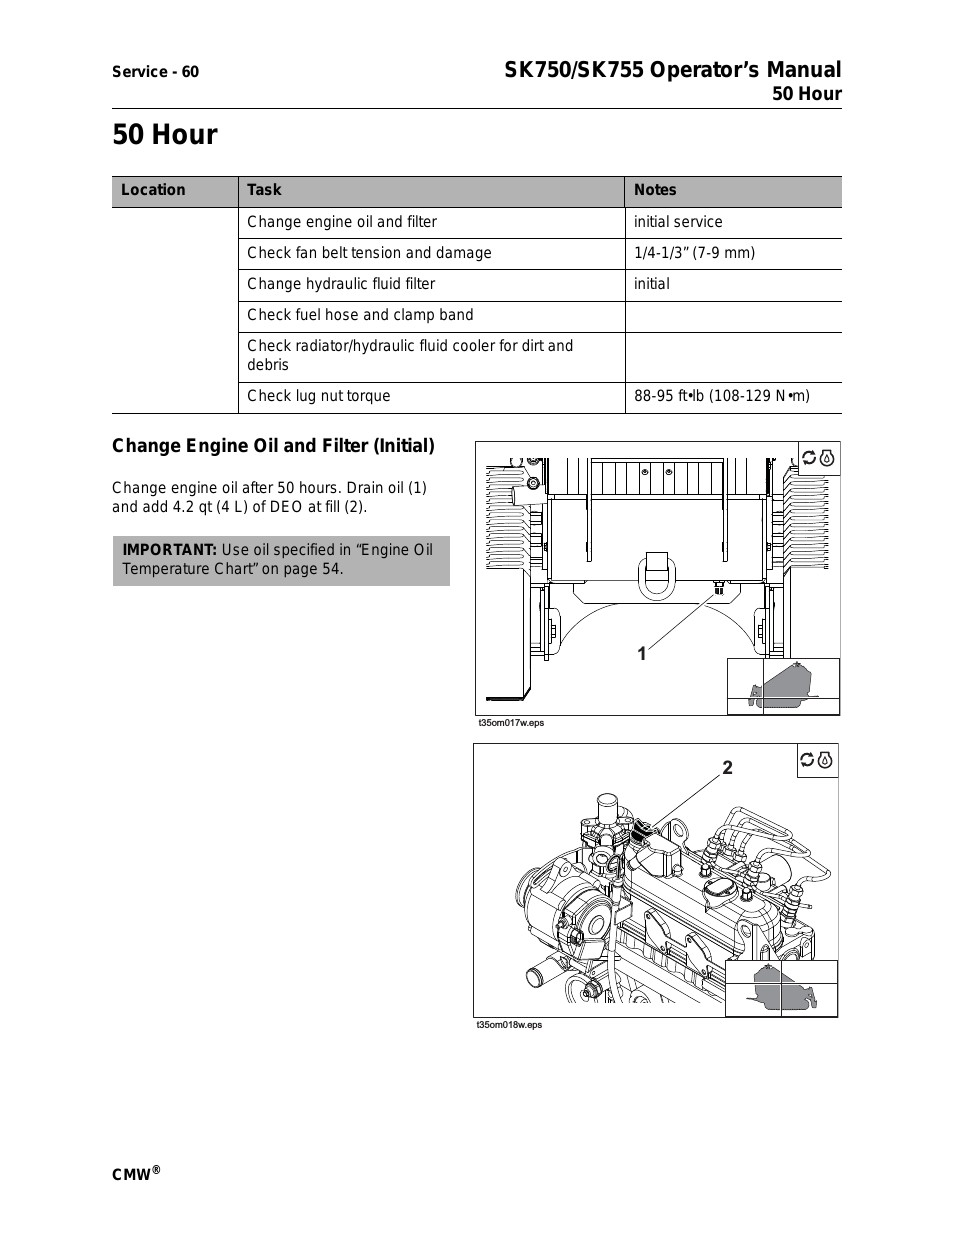 Ditch Witch Sk650 Wiring Diagram 50 Hour Ditch Witch Sk750 Sk755 User Manual Of Ditch Witch Sk650 Wiring Diagram